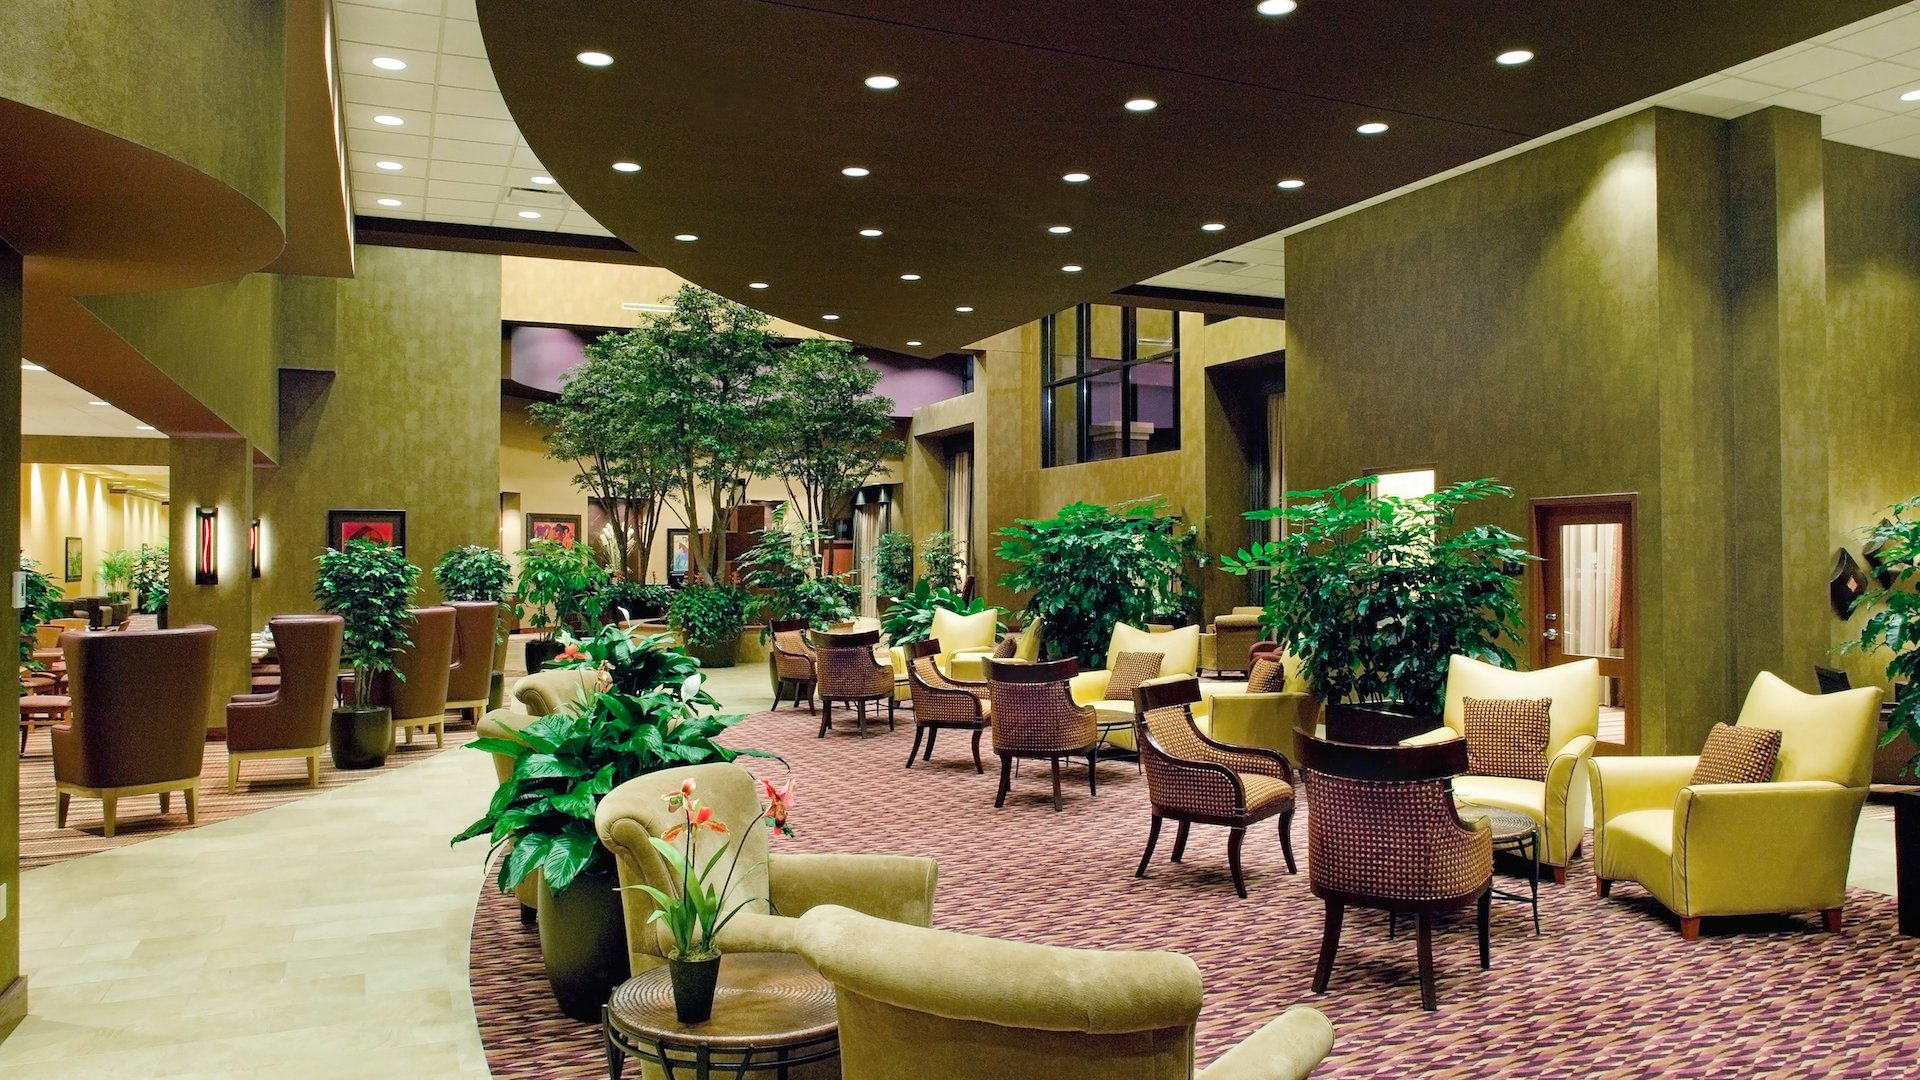 Embassy Suites Lobby